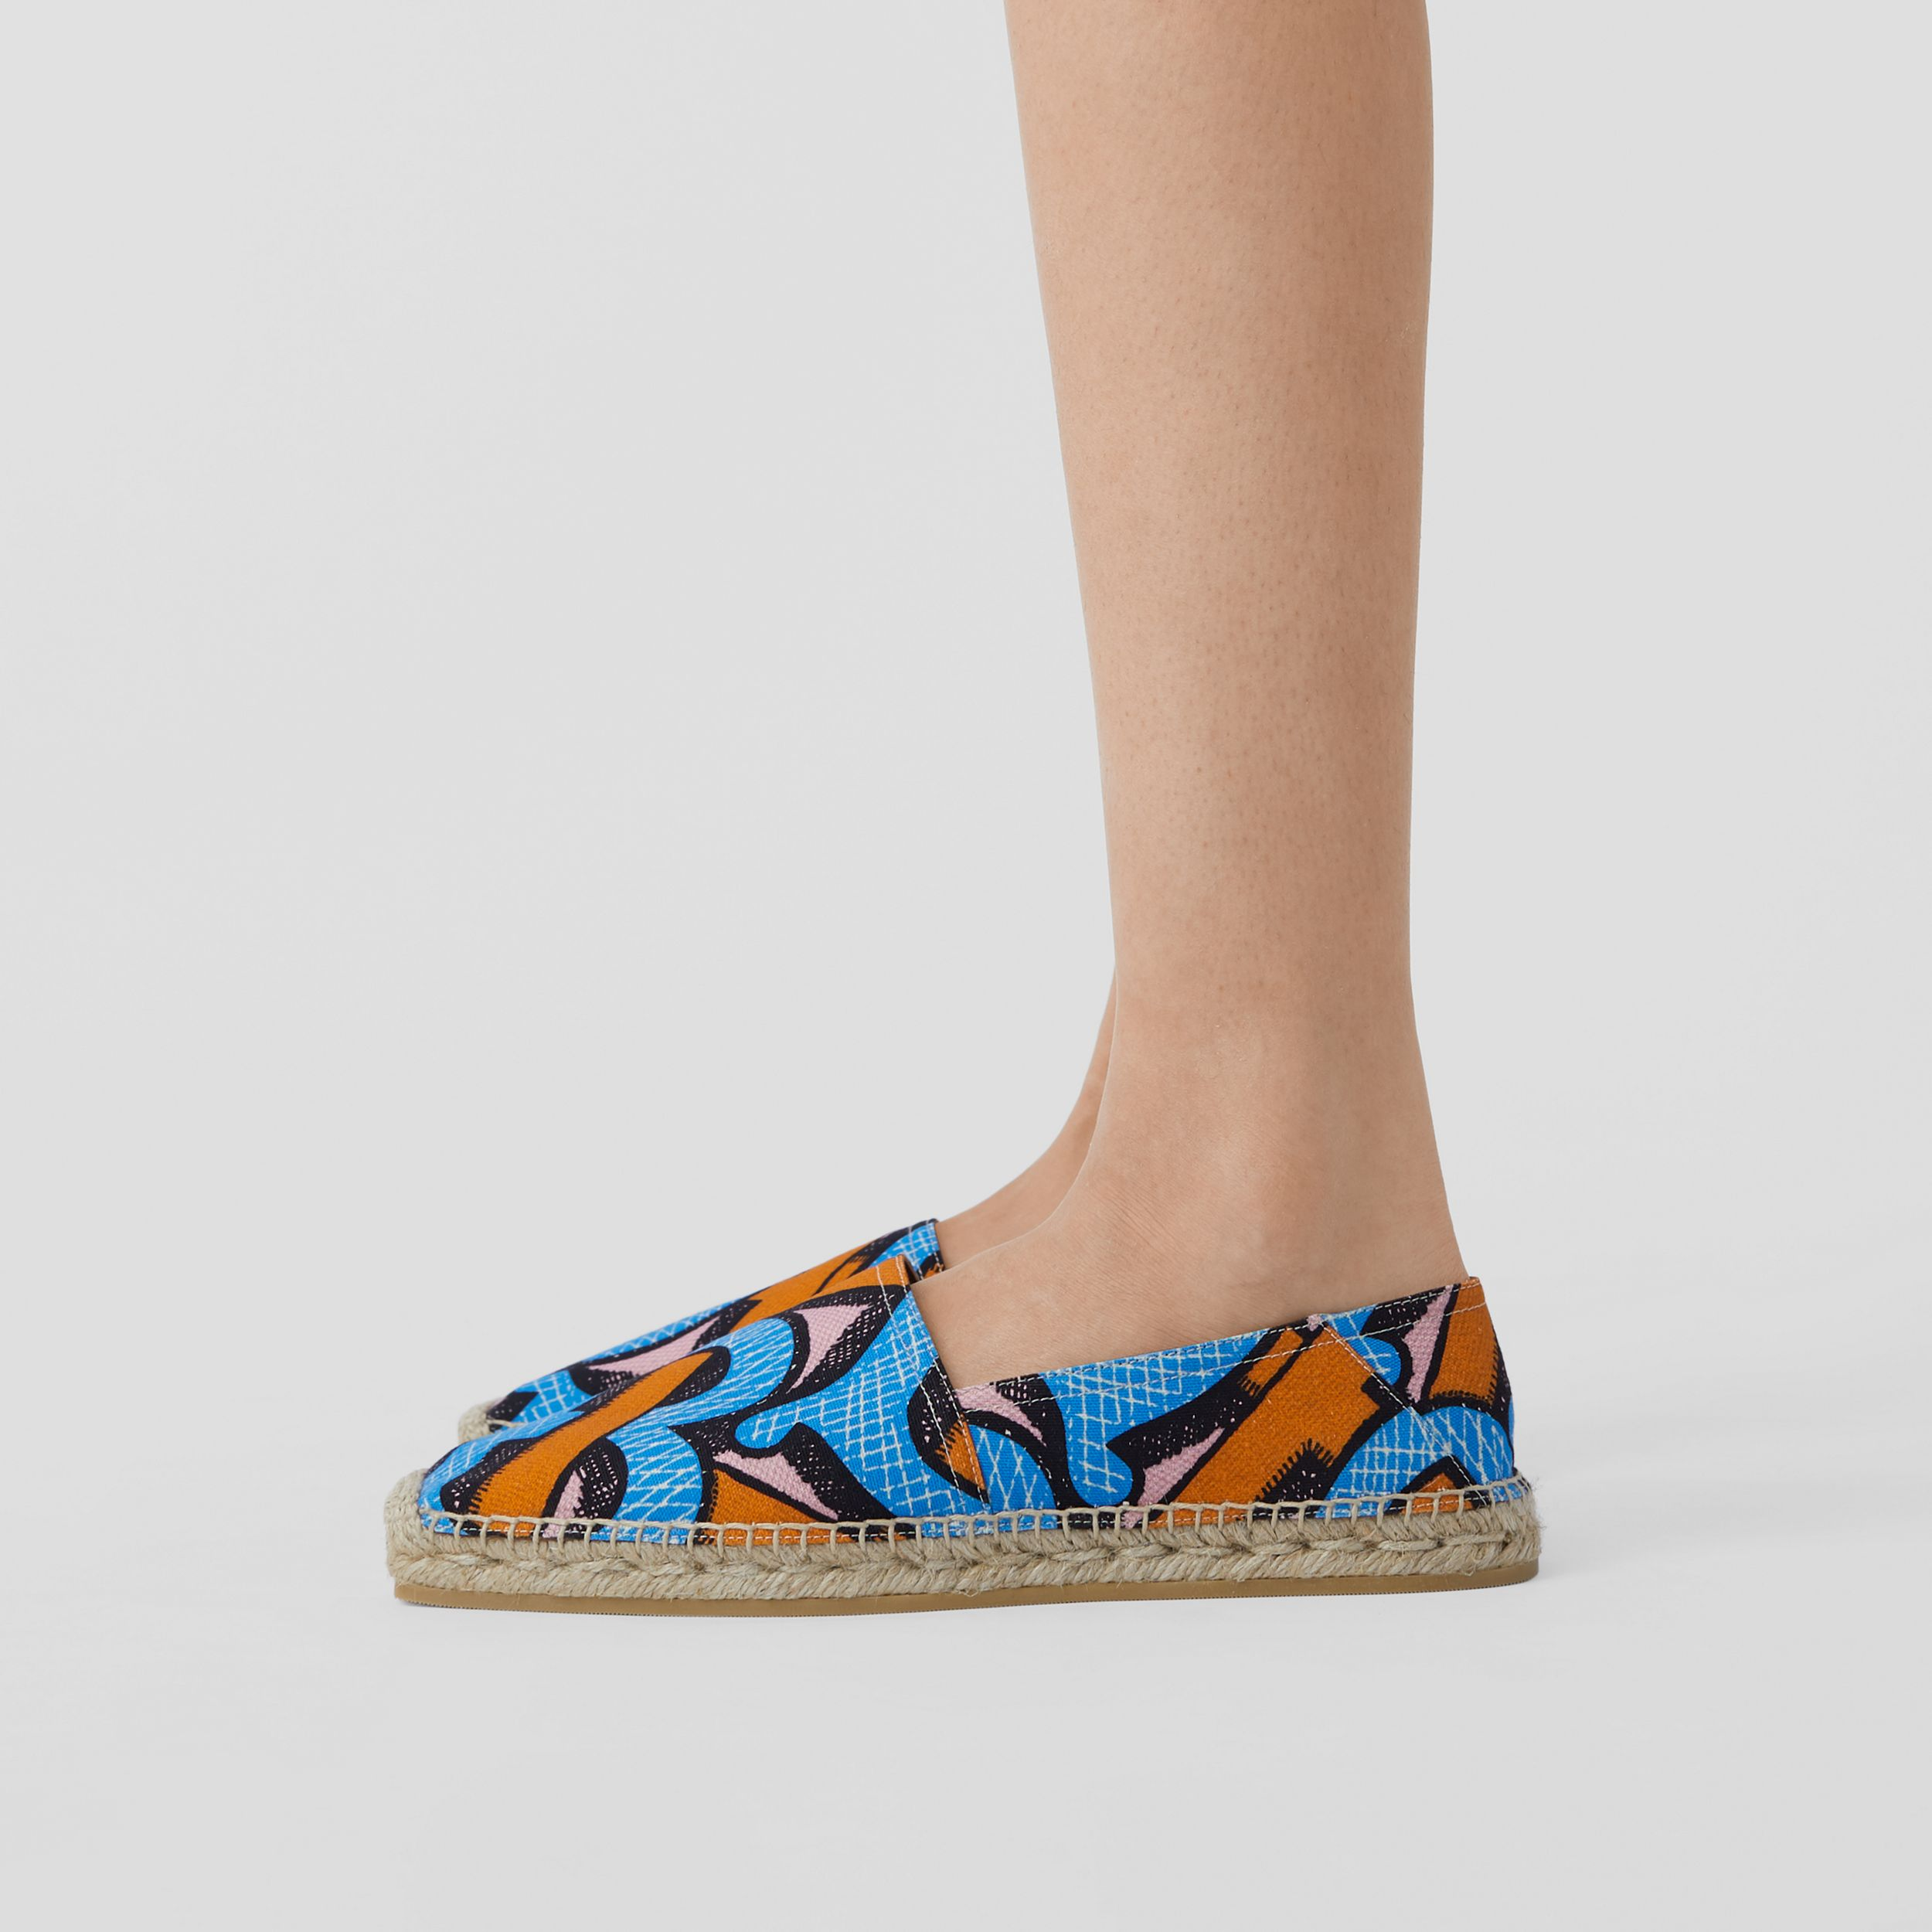 Monogram Print Cotton Canvas Espadrilles in Bright Cobalt - Women | Burberry Canada - 3